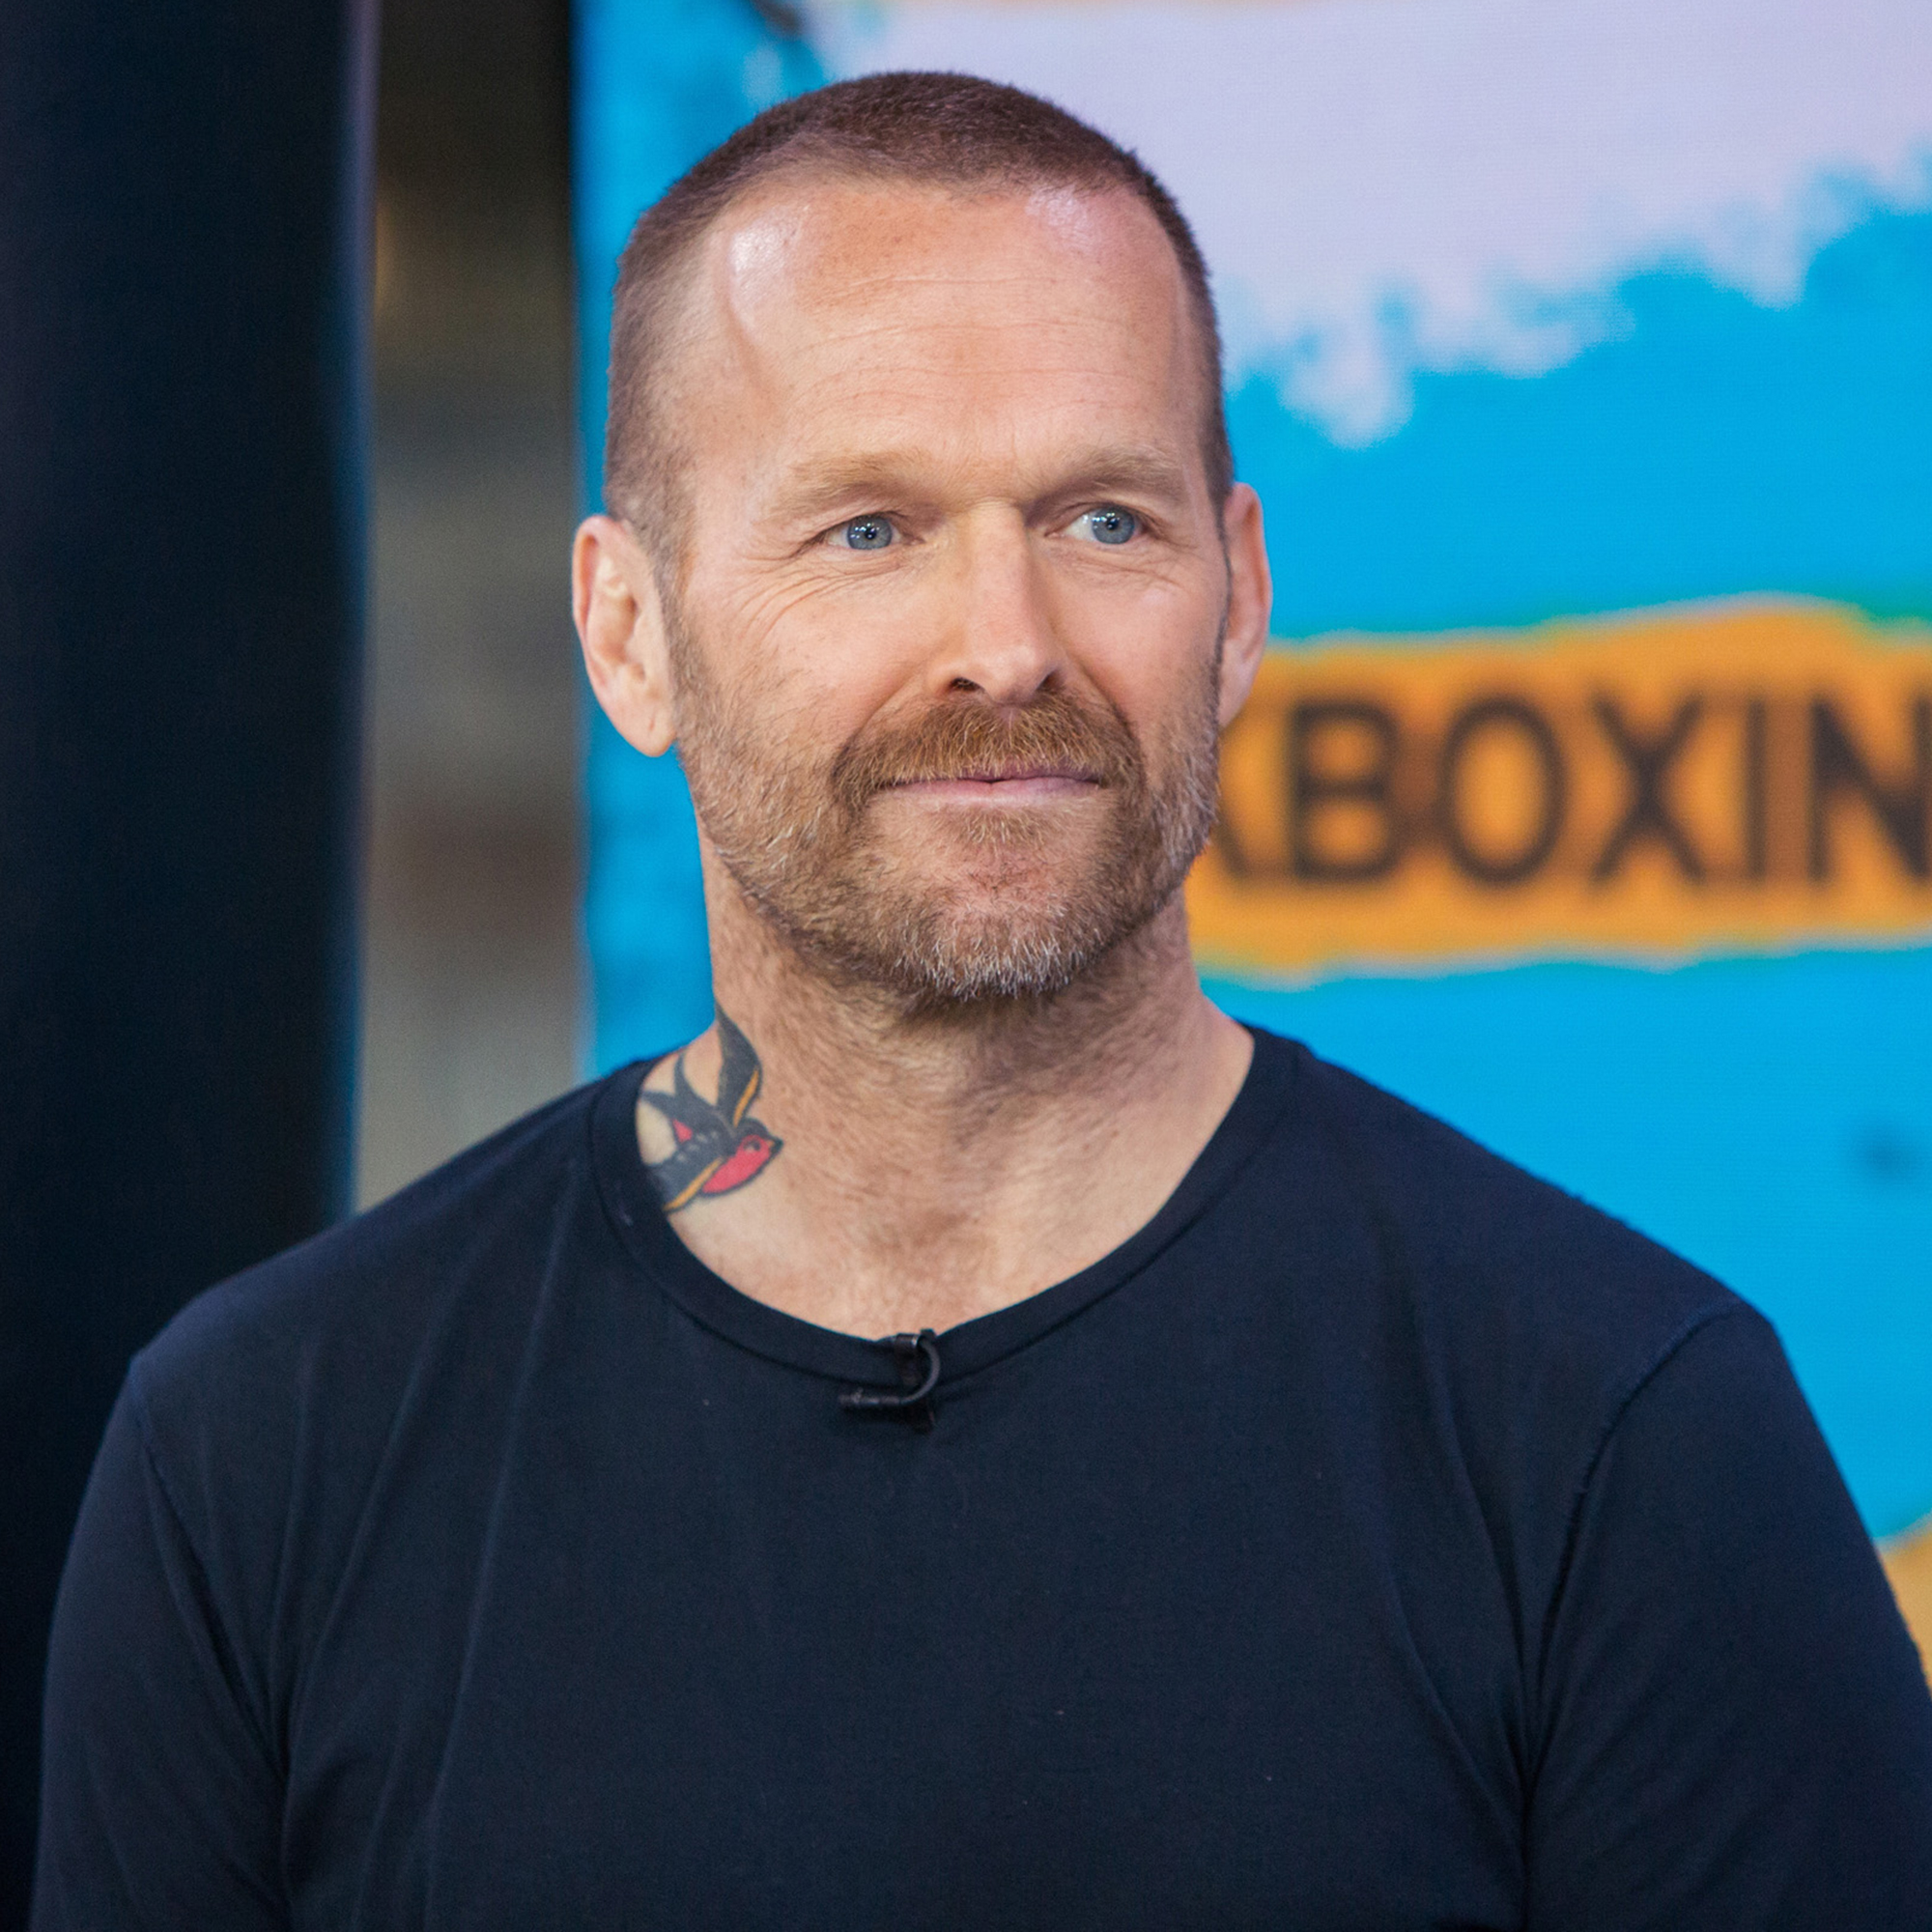 """Heart Attack Survivors - In February 2017 at age 51, the trainer best known for his work on The Biggest Loser suffered what he later told Us was called a """"'widow maker.' The kind of heart attack I had was just like, boom. Lights out."""" Harper, who said his emergency event was mostly caused by a genetic condition, admitted that he was """"confused"""" by his heart attack since he was in such good shape."""